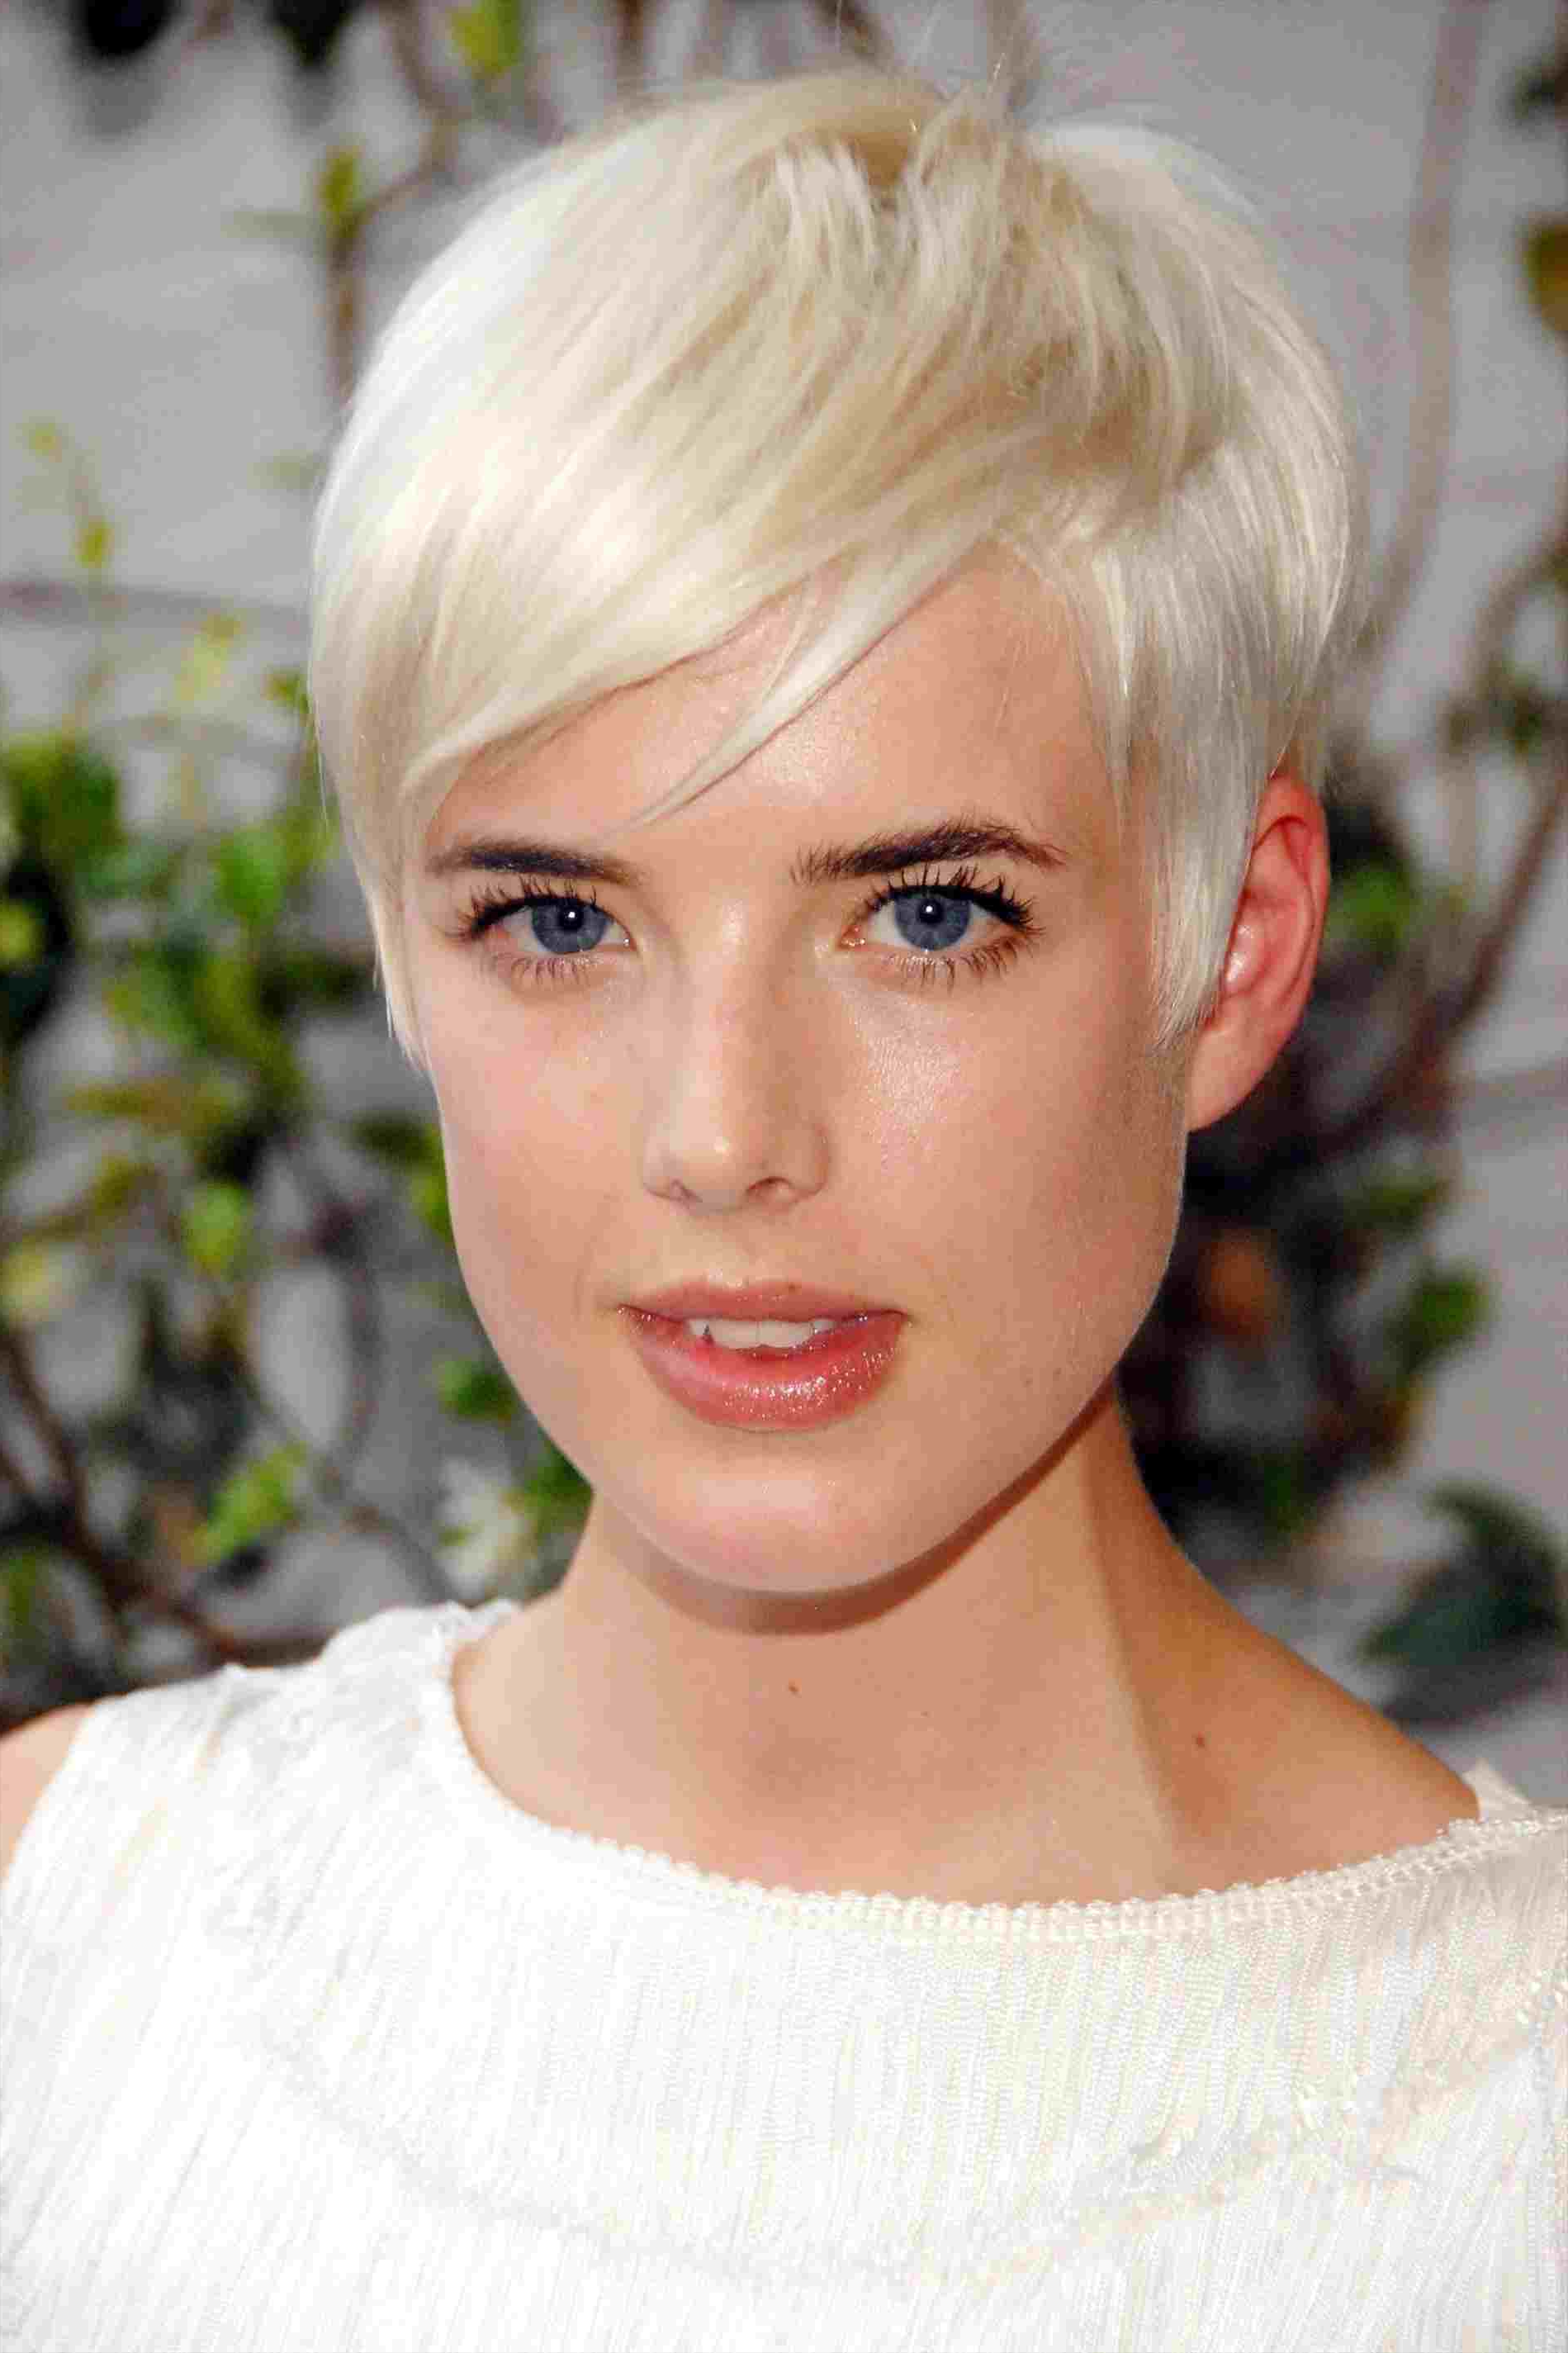 Rhharpersbazaarcom Haircut And Older Women Rhhaircolorsitecom Short Intended For Edgy Short Haircuts (View 23 of 25)